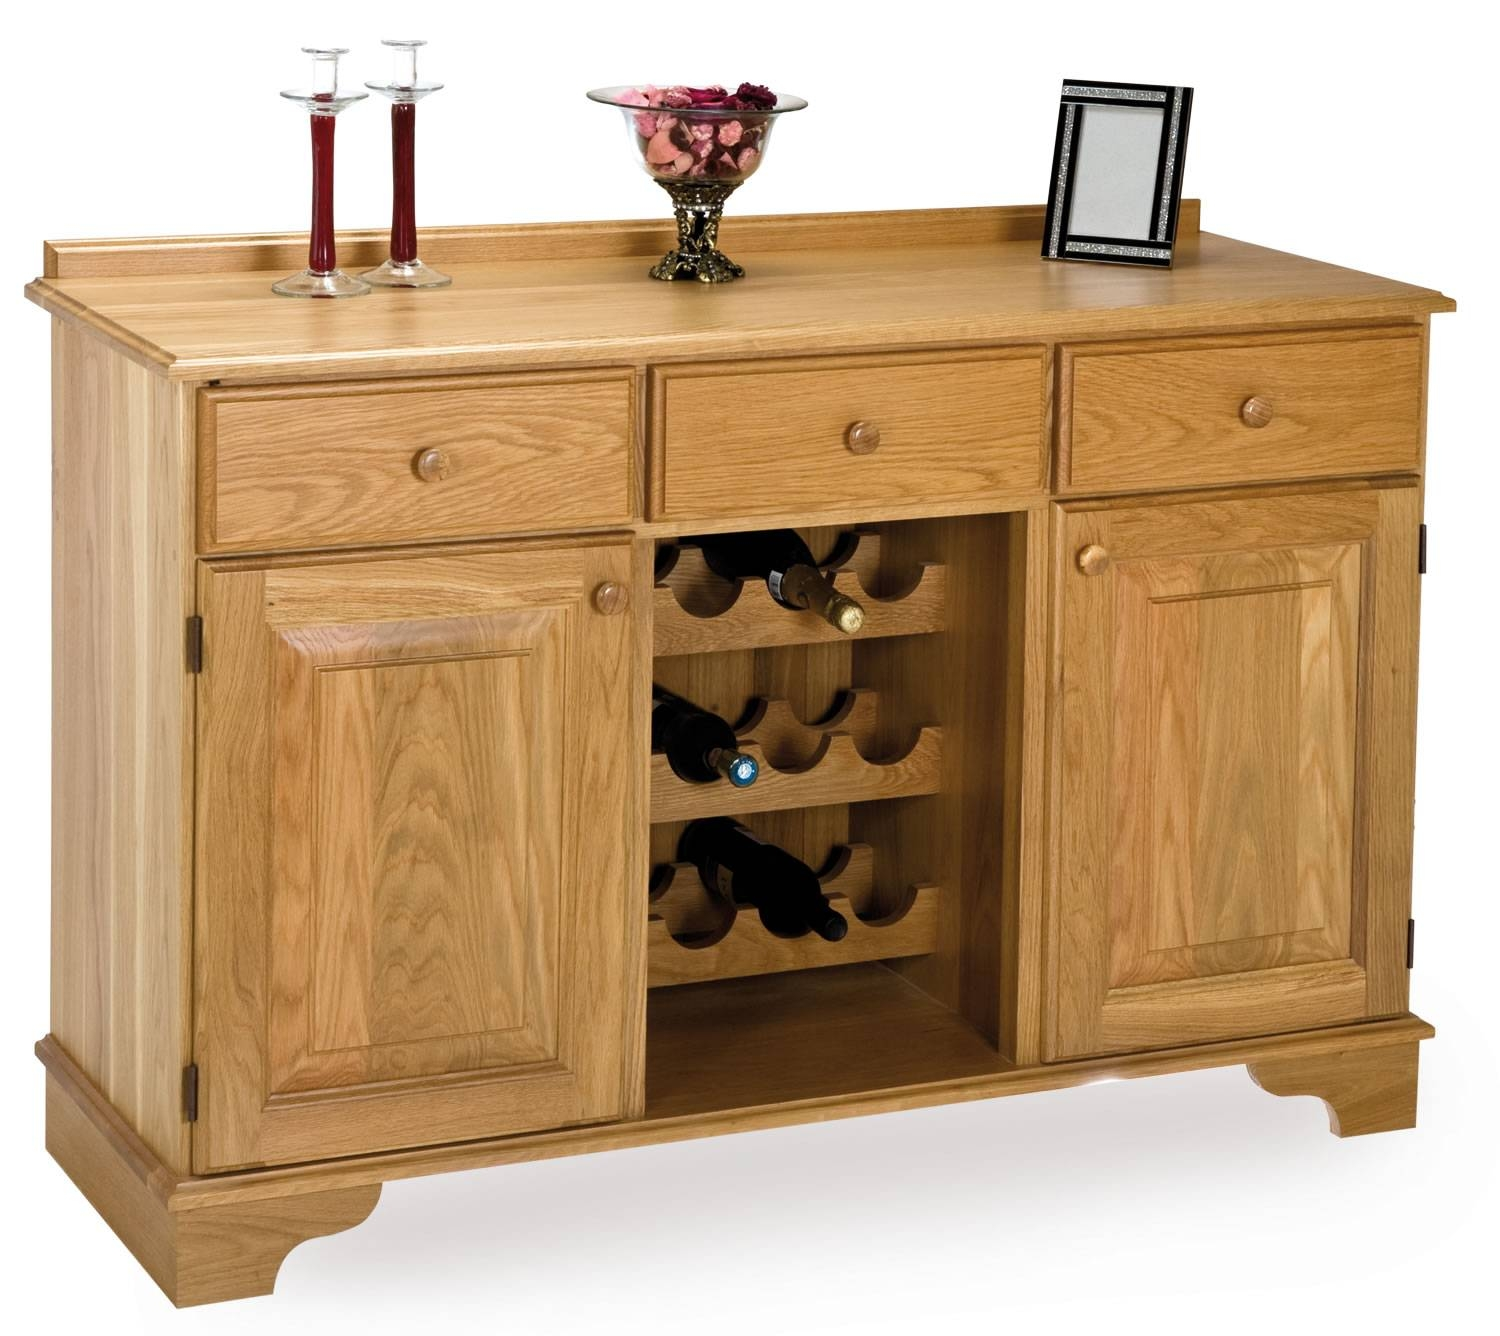 Oak Wine Rack Sideboard with regard to Sideboards With Wine Rack (Image 10 of 15)